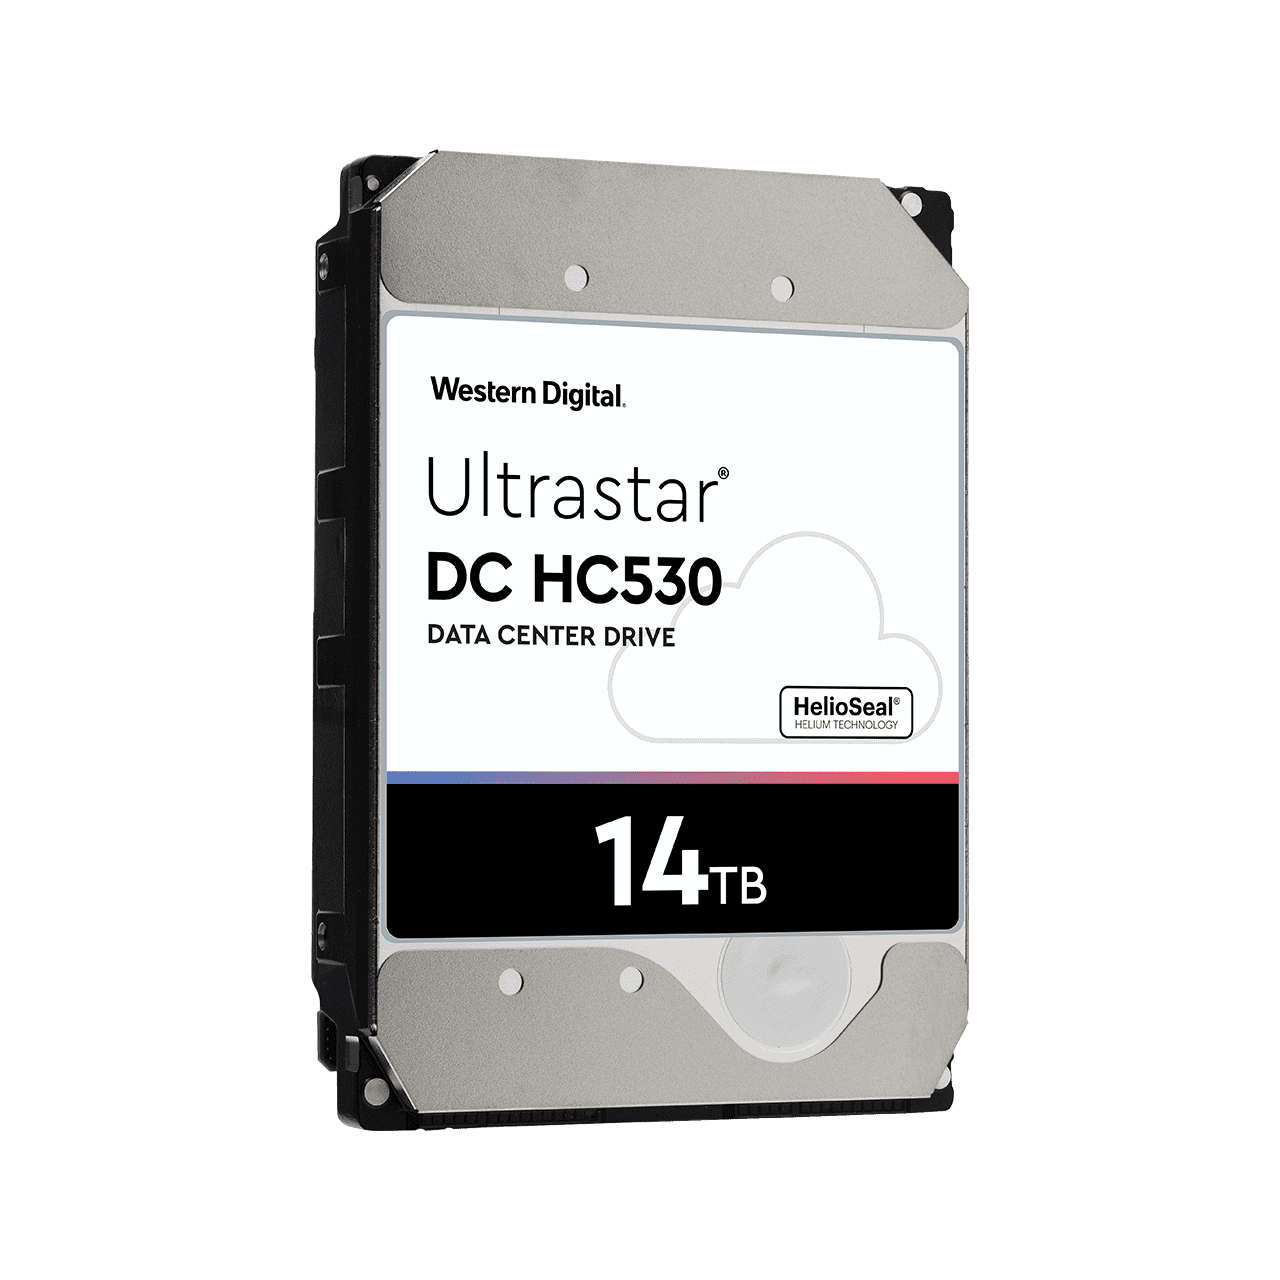 hc530-event-redisconf2019-western-digital